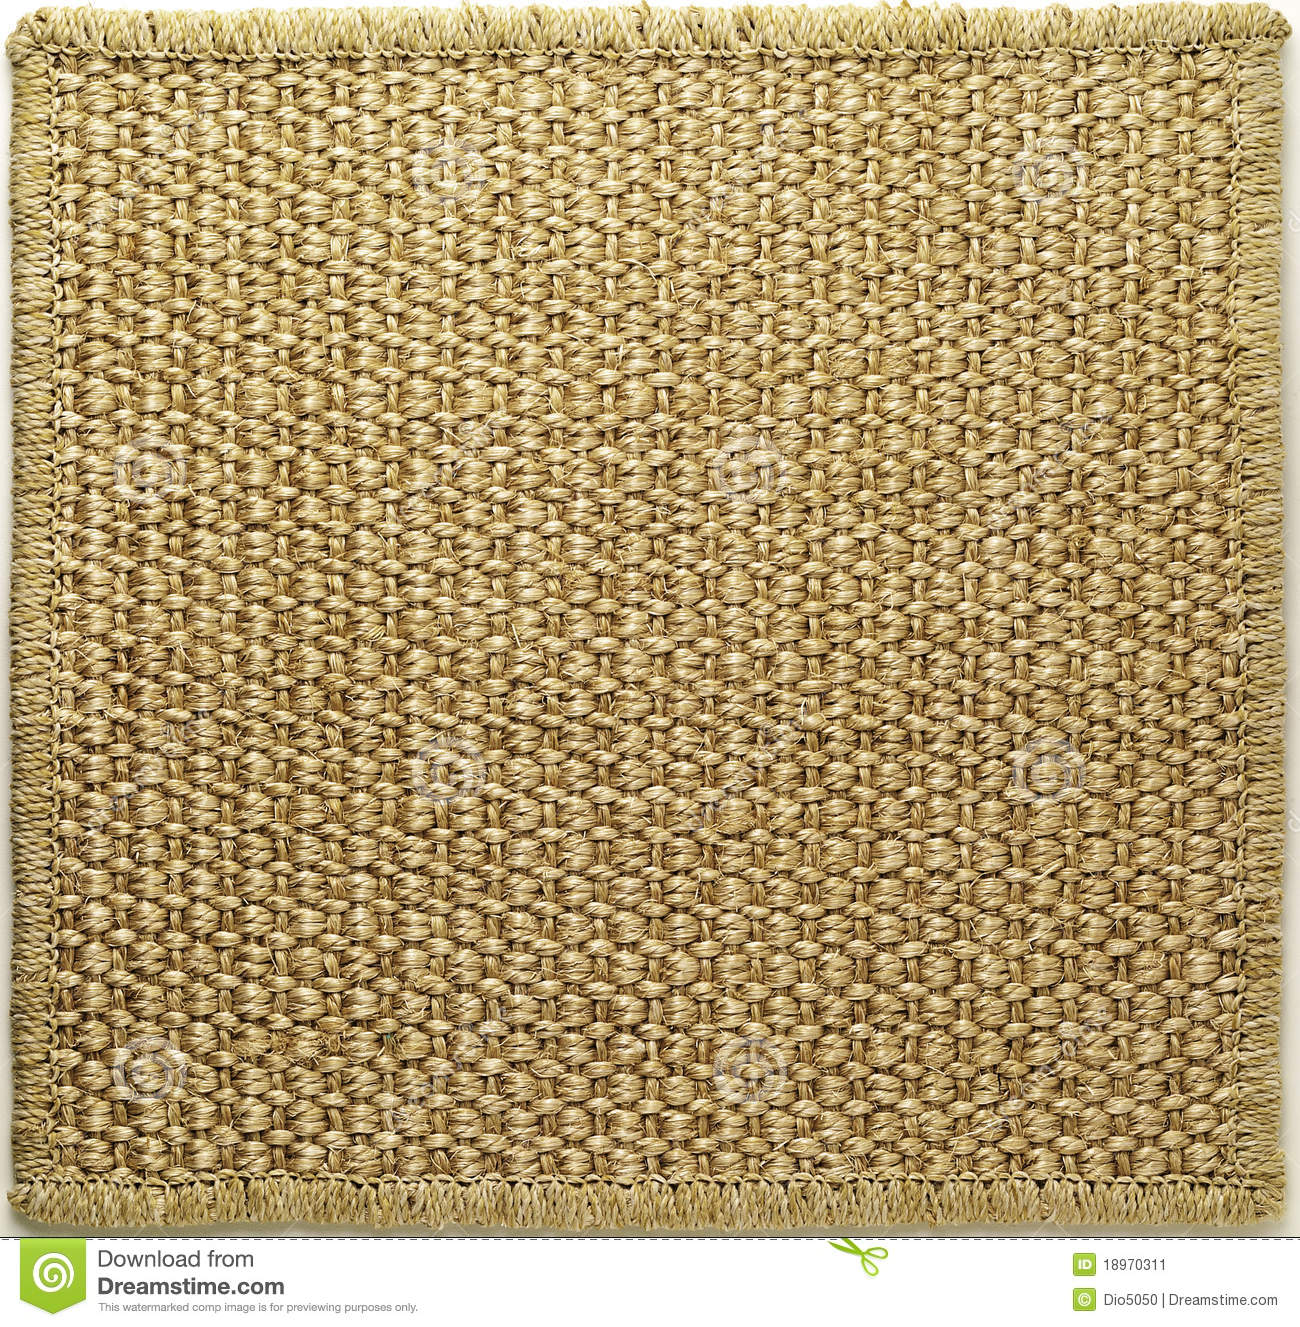 Rustic Rug Stock Image Image 18970311